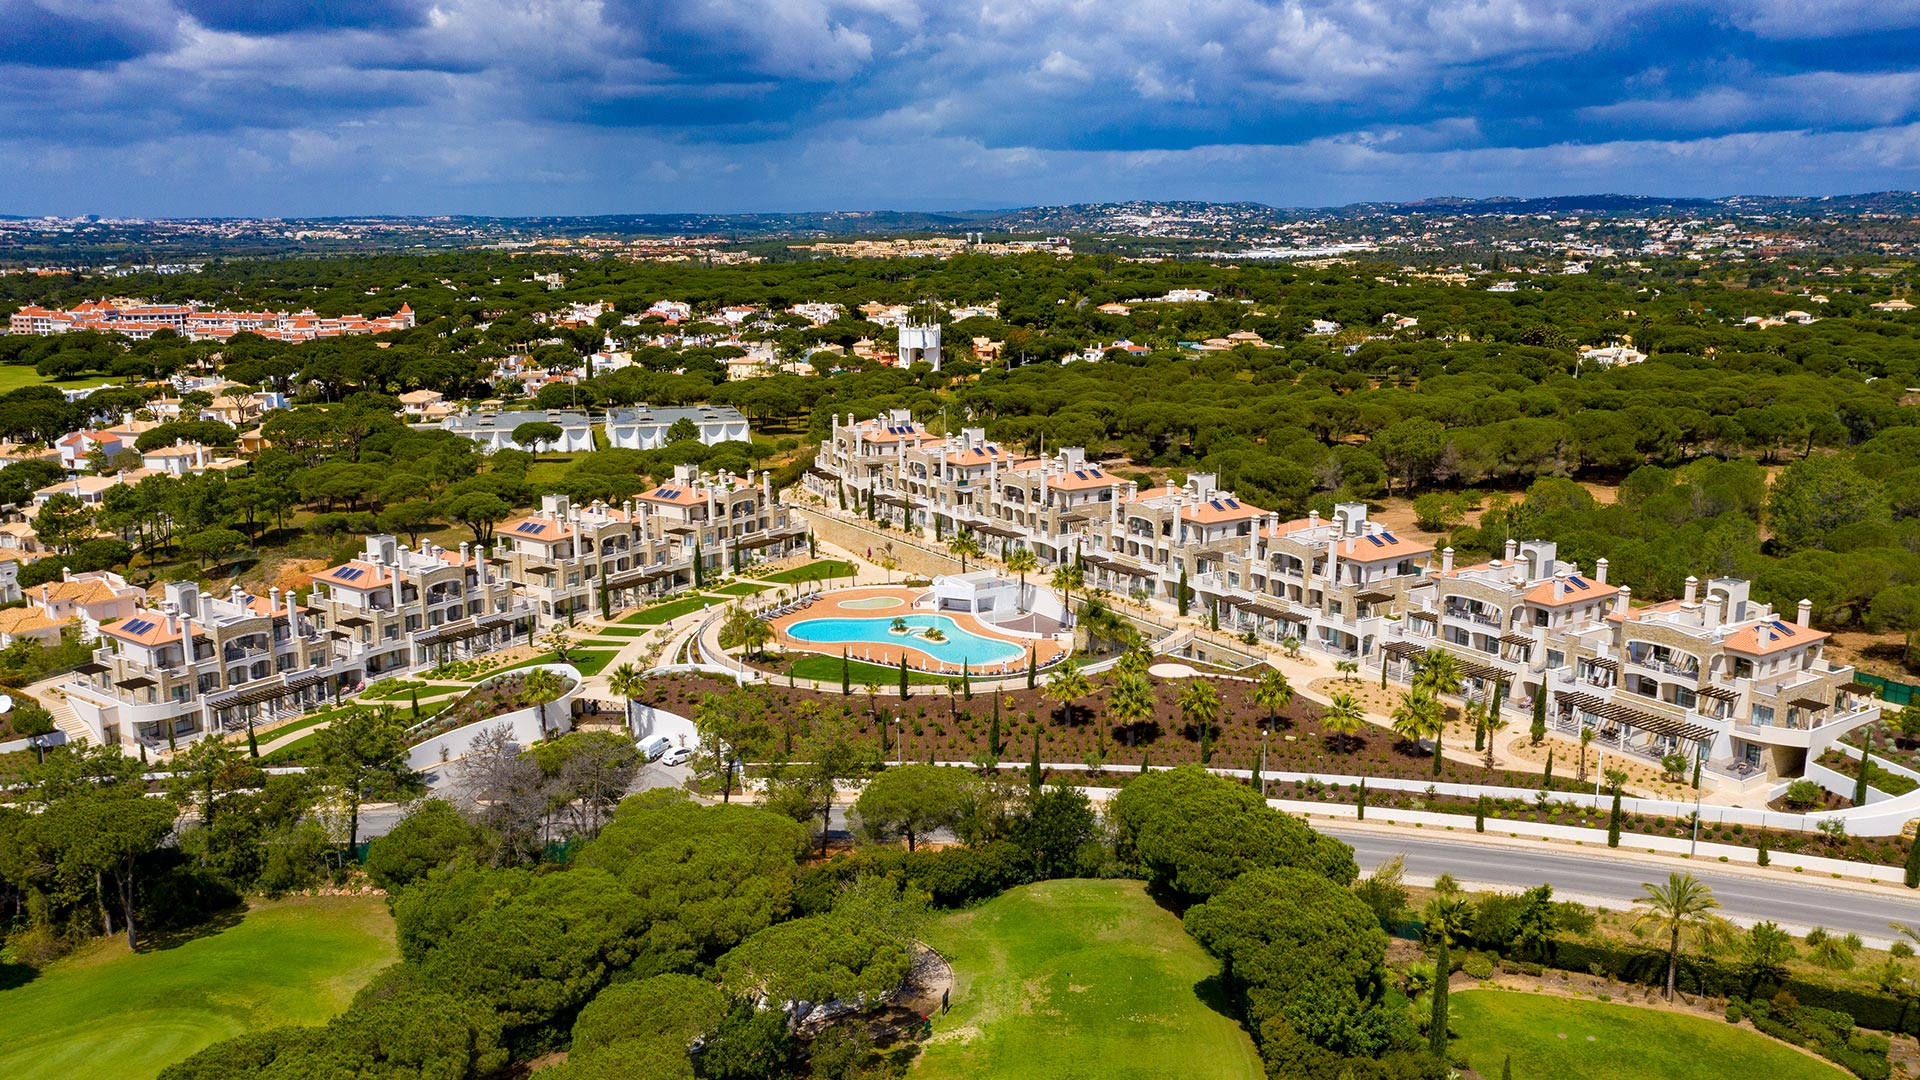 Aerial view of Pine Hills, Vilamoura, Portugal